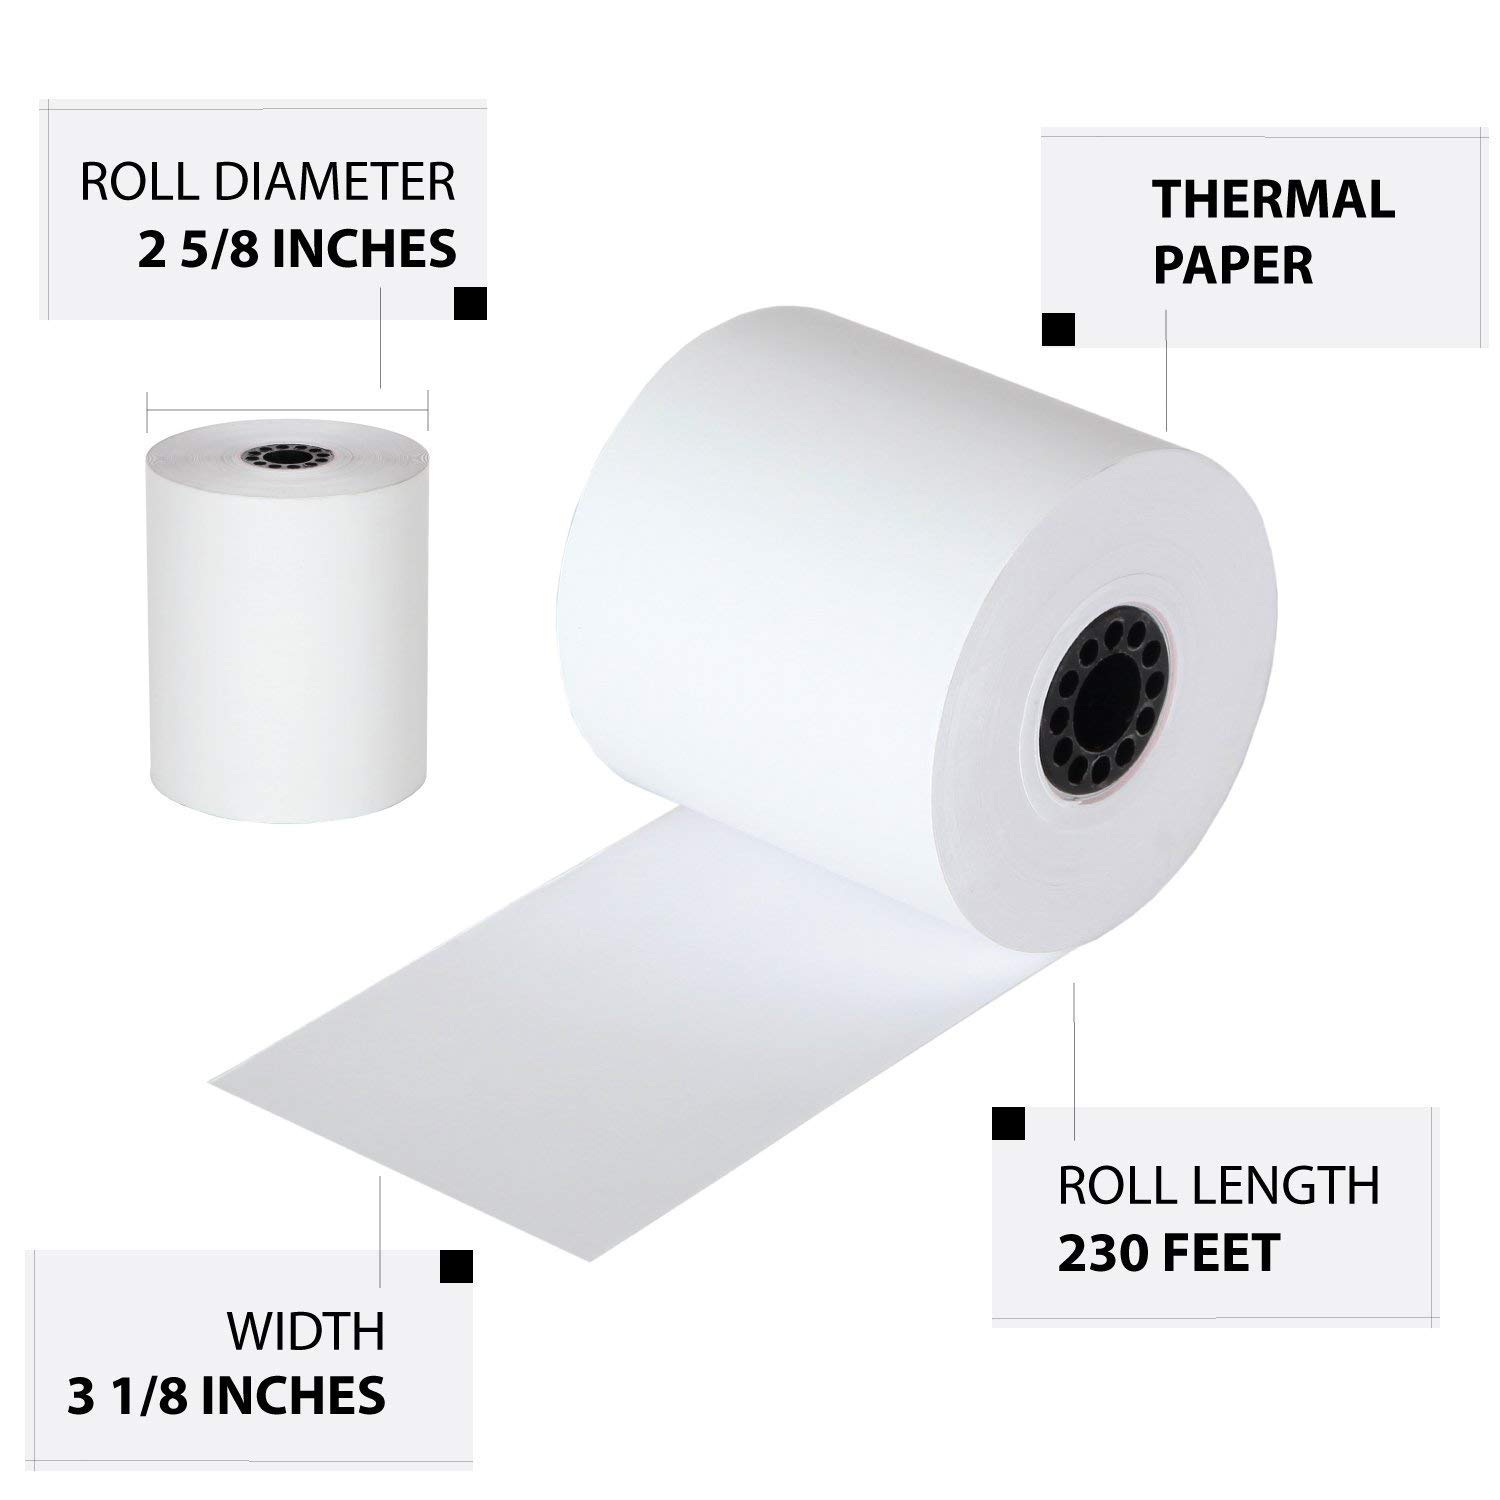 FHS Retail Thermal Paper Cash Register Rolls, 3 1/8 x 230', 50 Rolls In Case, Made in USA/Canada by FHS Retail (Image #4)